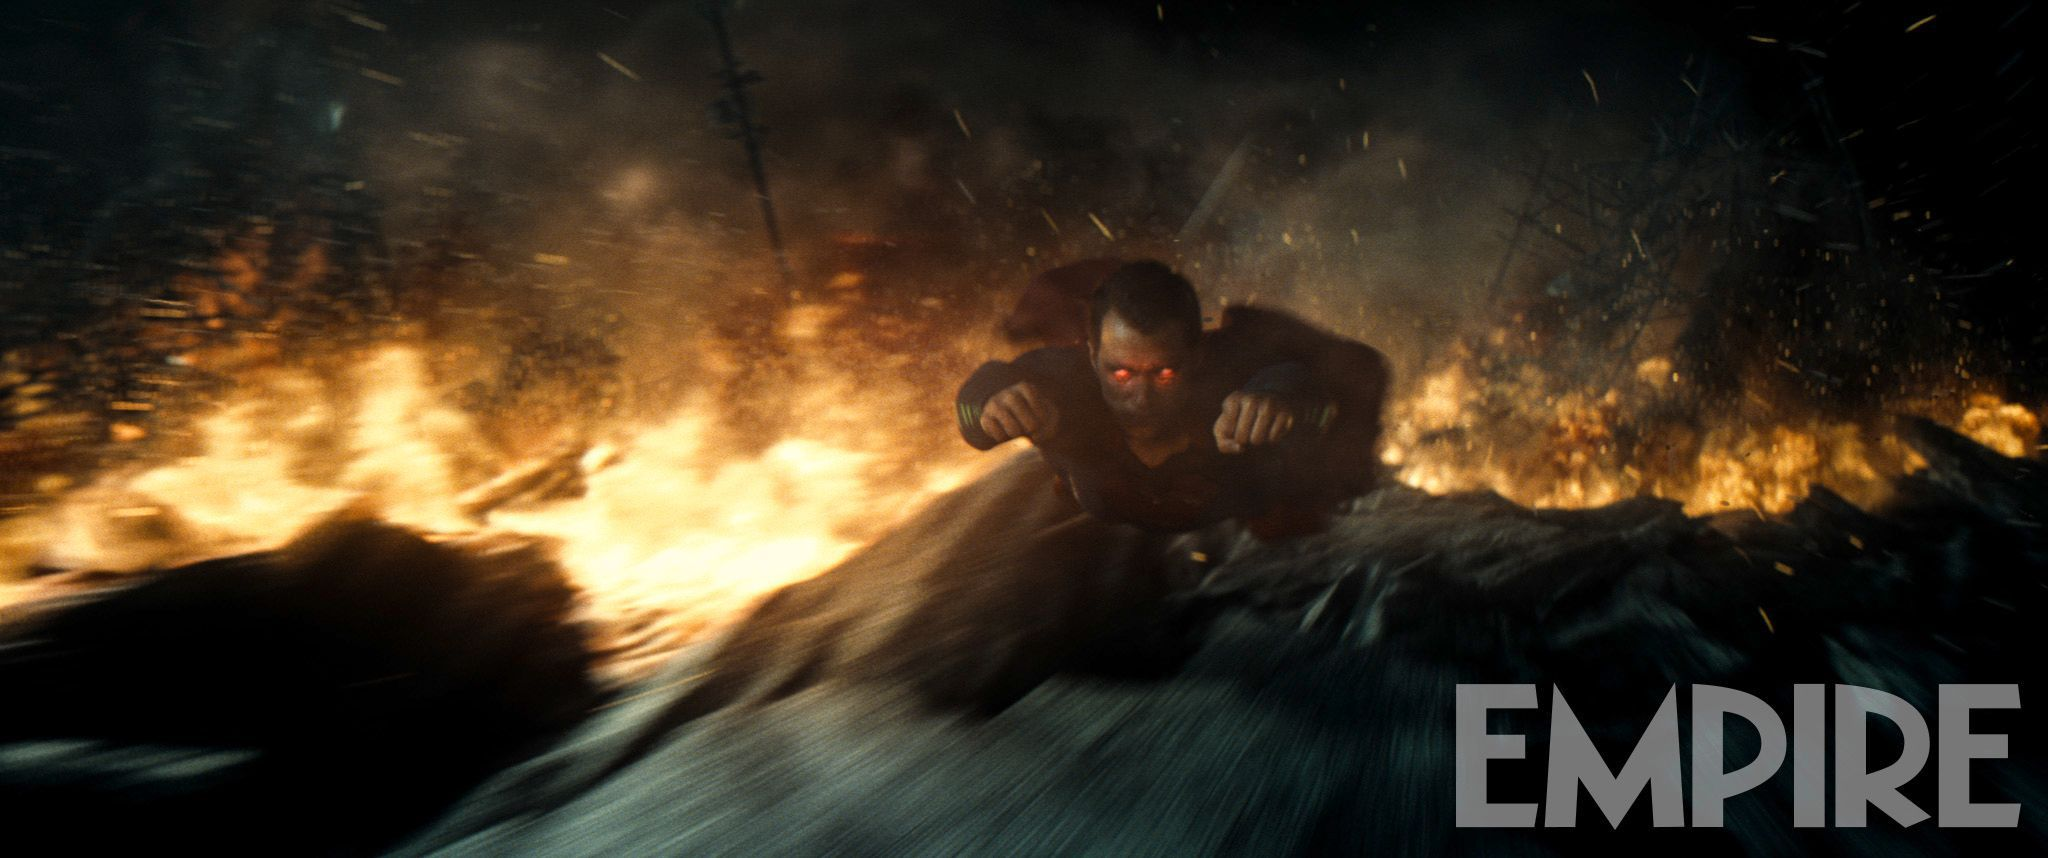 'Batman v Superman: Dawn of Justice' image from March 2016 issue of Empire Magazine